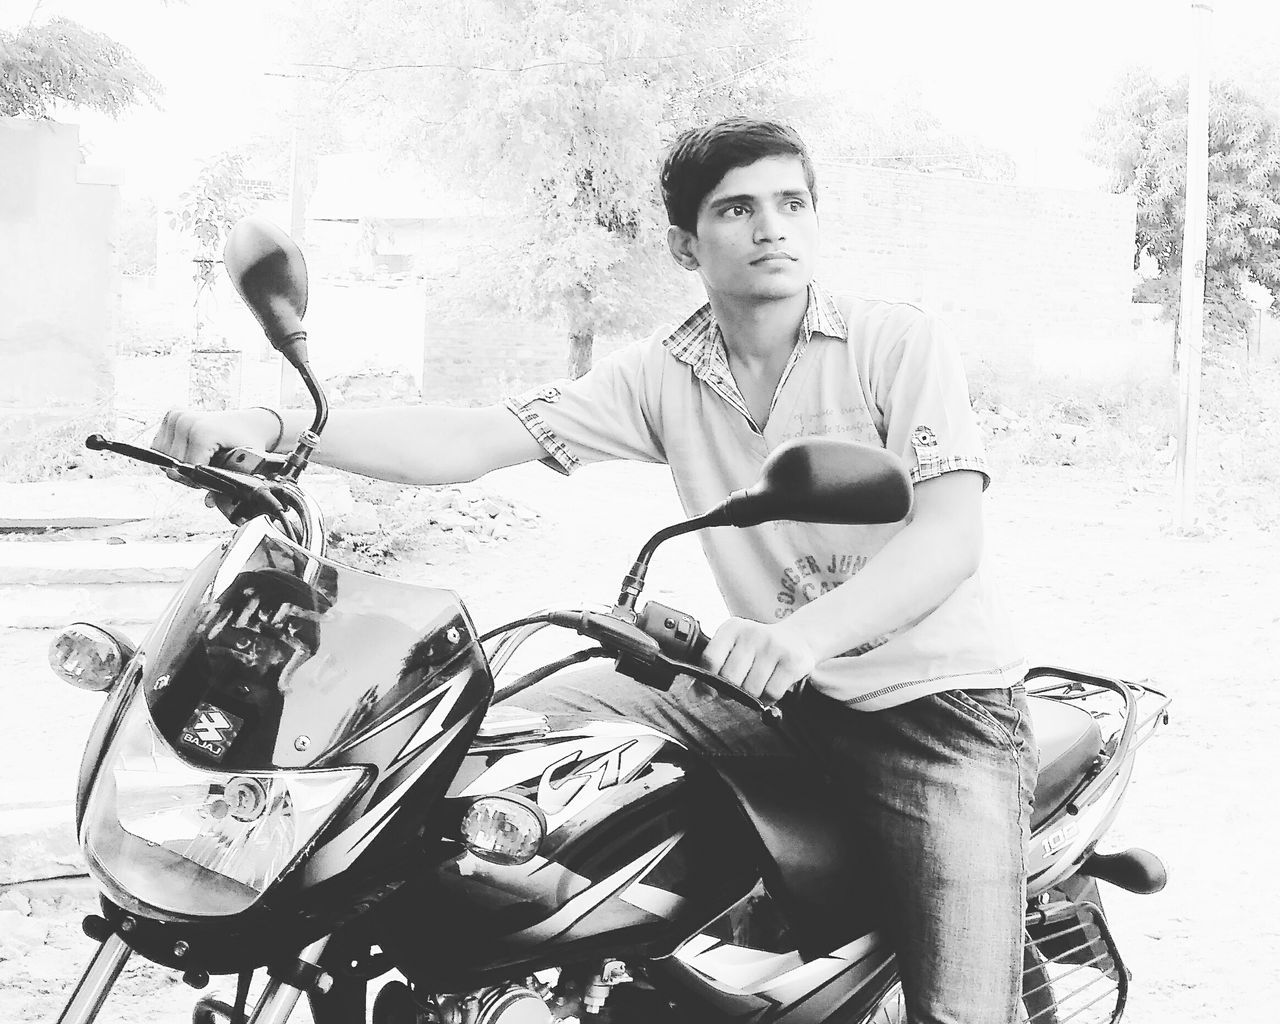 Fashion Bike Ride Bike Bajaj Boy Handsome Model Village Happy People One Person Outdoors Sunlight Day EyeEm